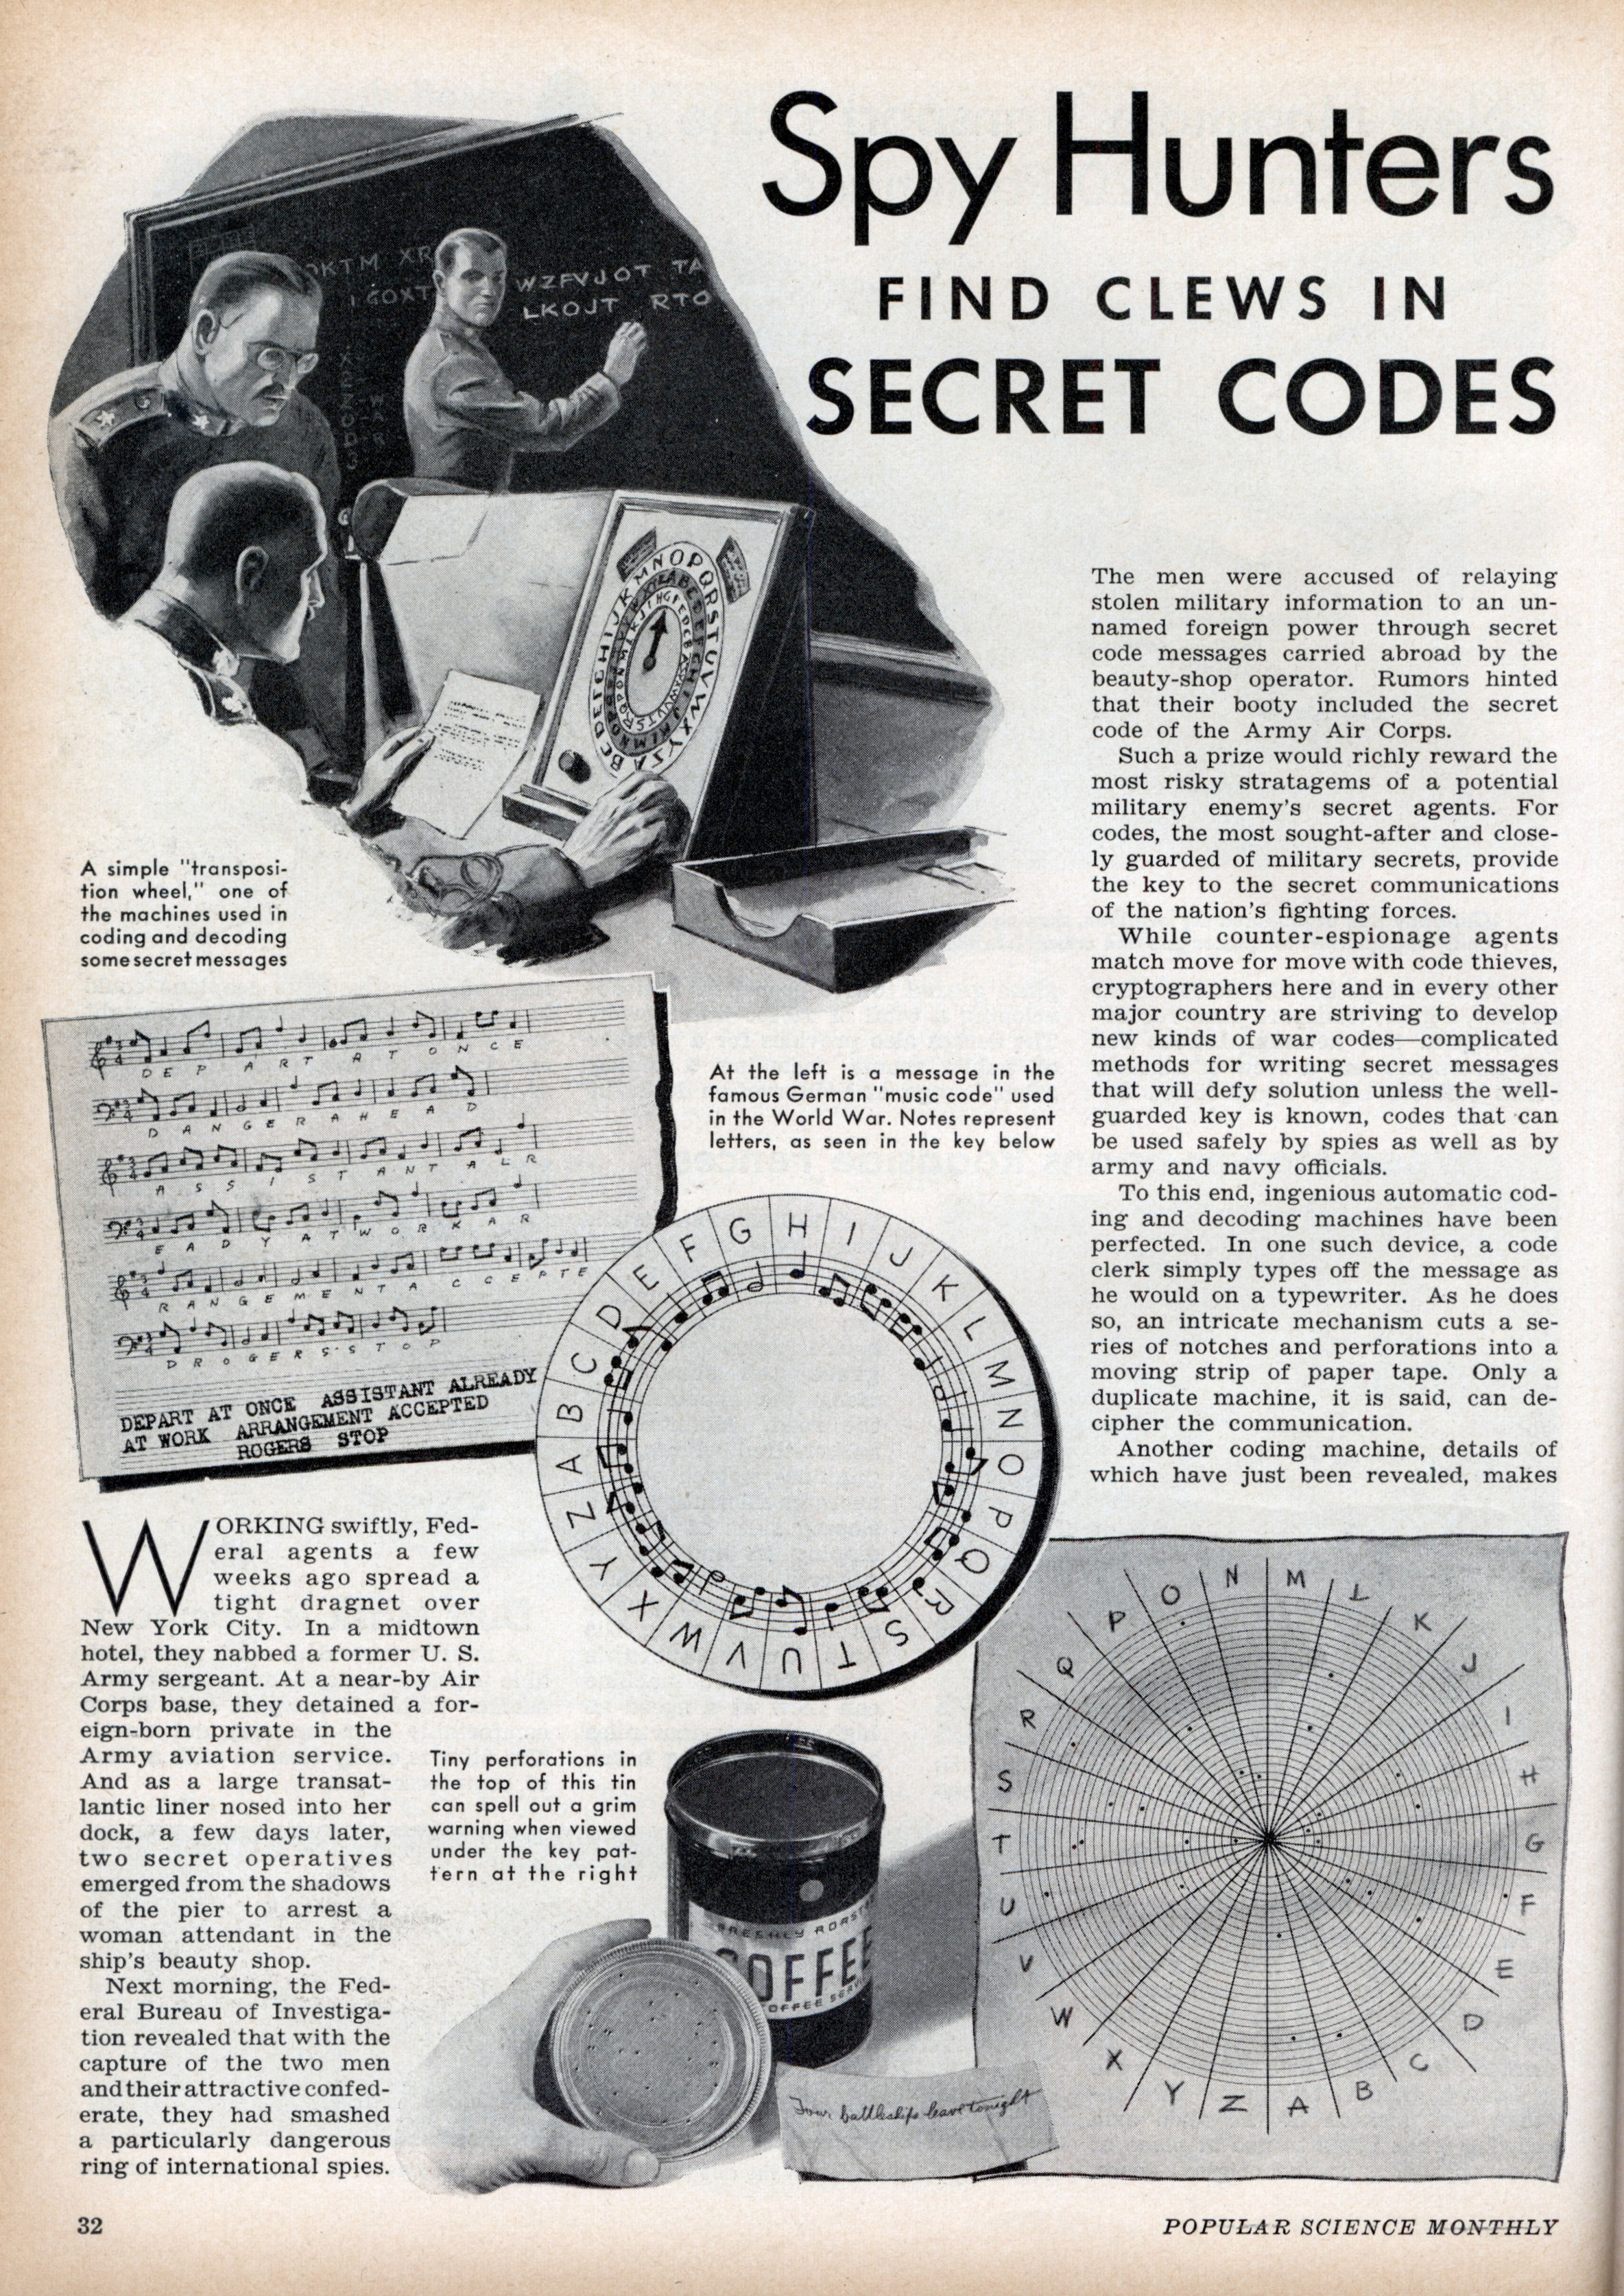 Break the Code Codes have been used throughout history whenever people wanted to keep messages private. In American history, George Washington sent coded messages to his agents, and the Culper Spy ring used codes to communicate with each other.